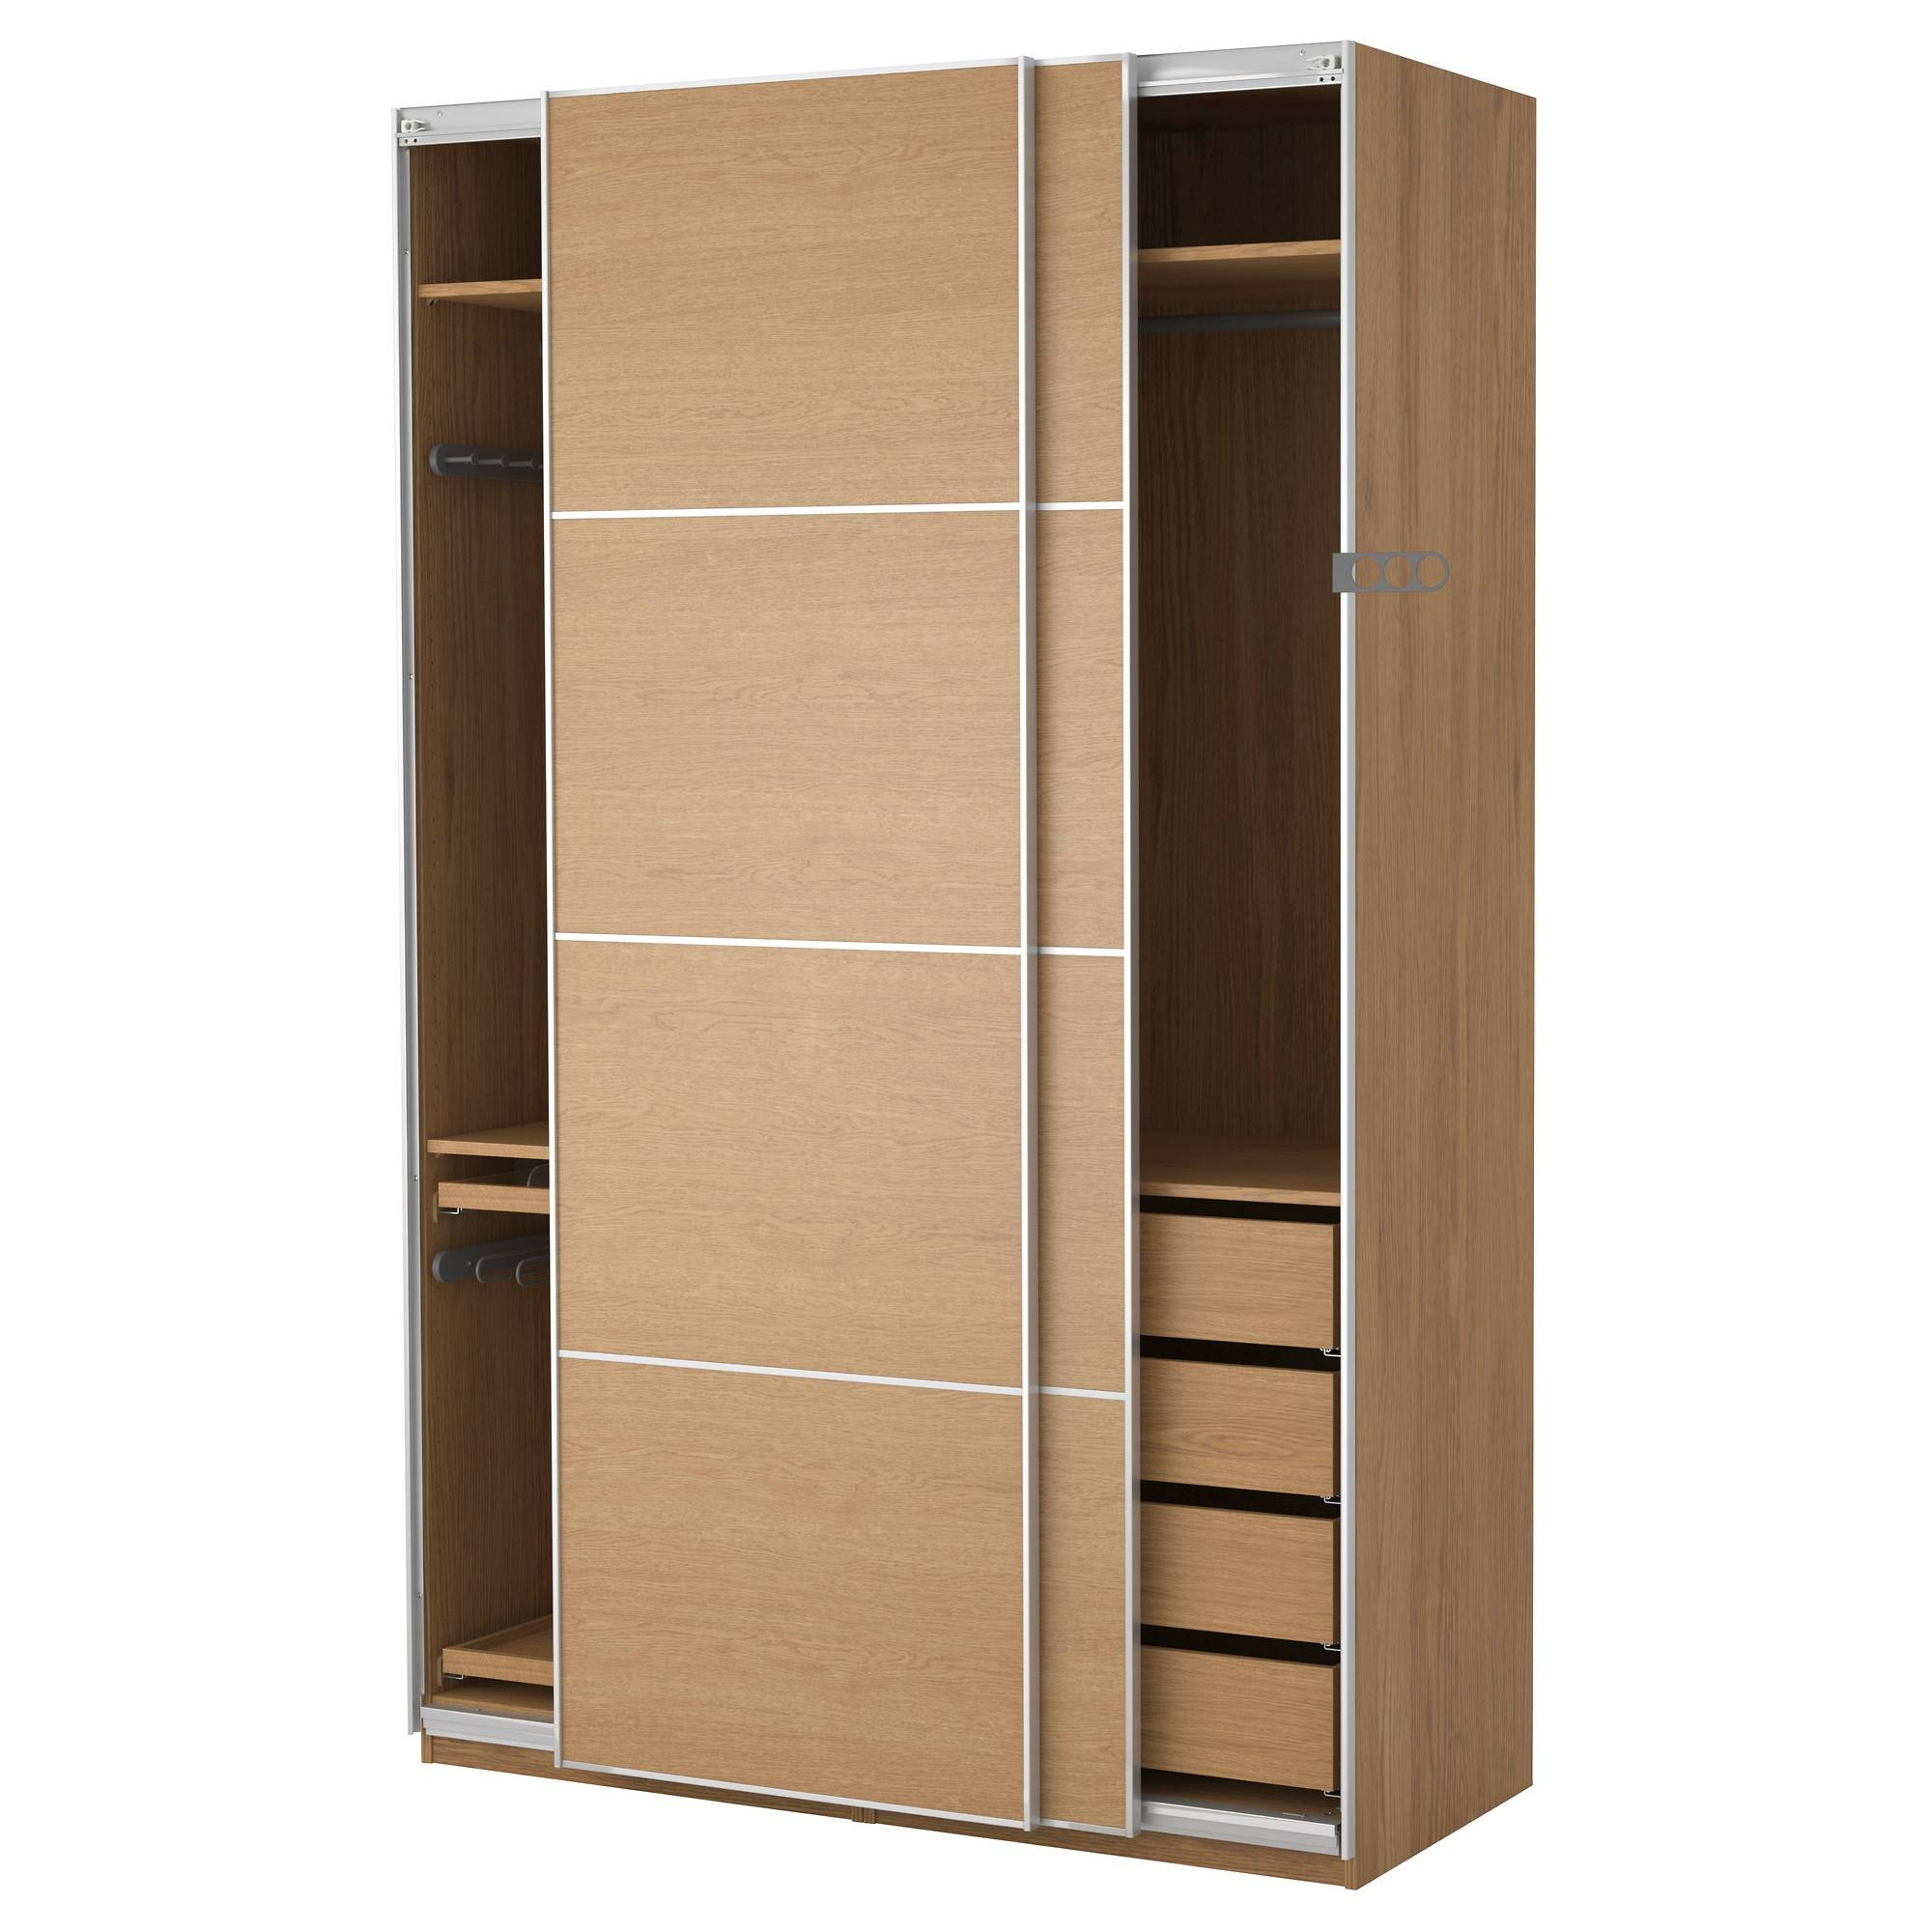 Tremendous Wooden Wardrobe Closet Ikea | Roselawnlutheran in Dark Wood Wardrobe Sliding Doors (Image 26 of 30)